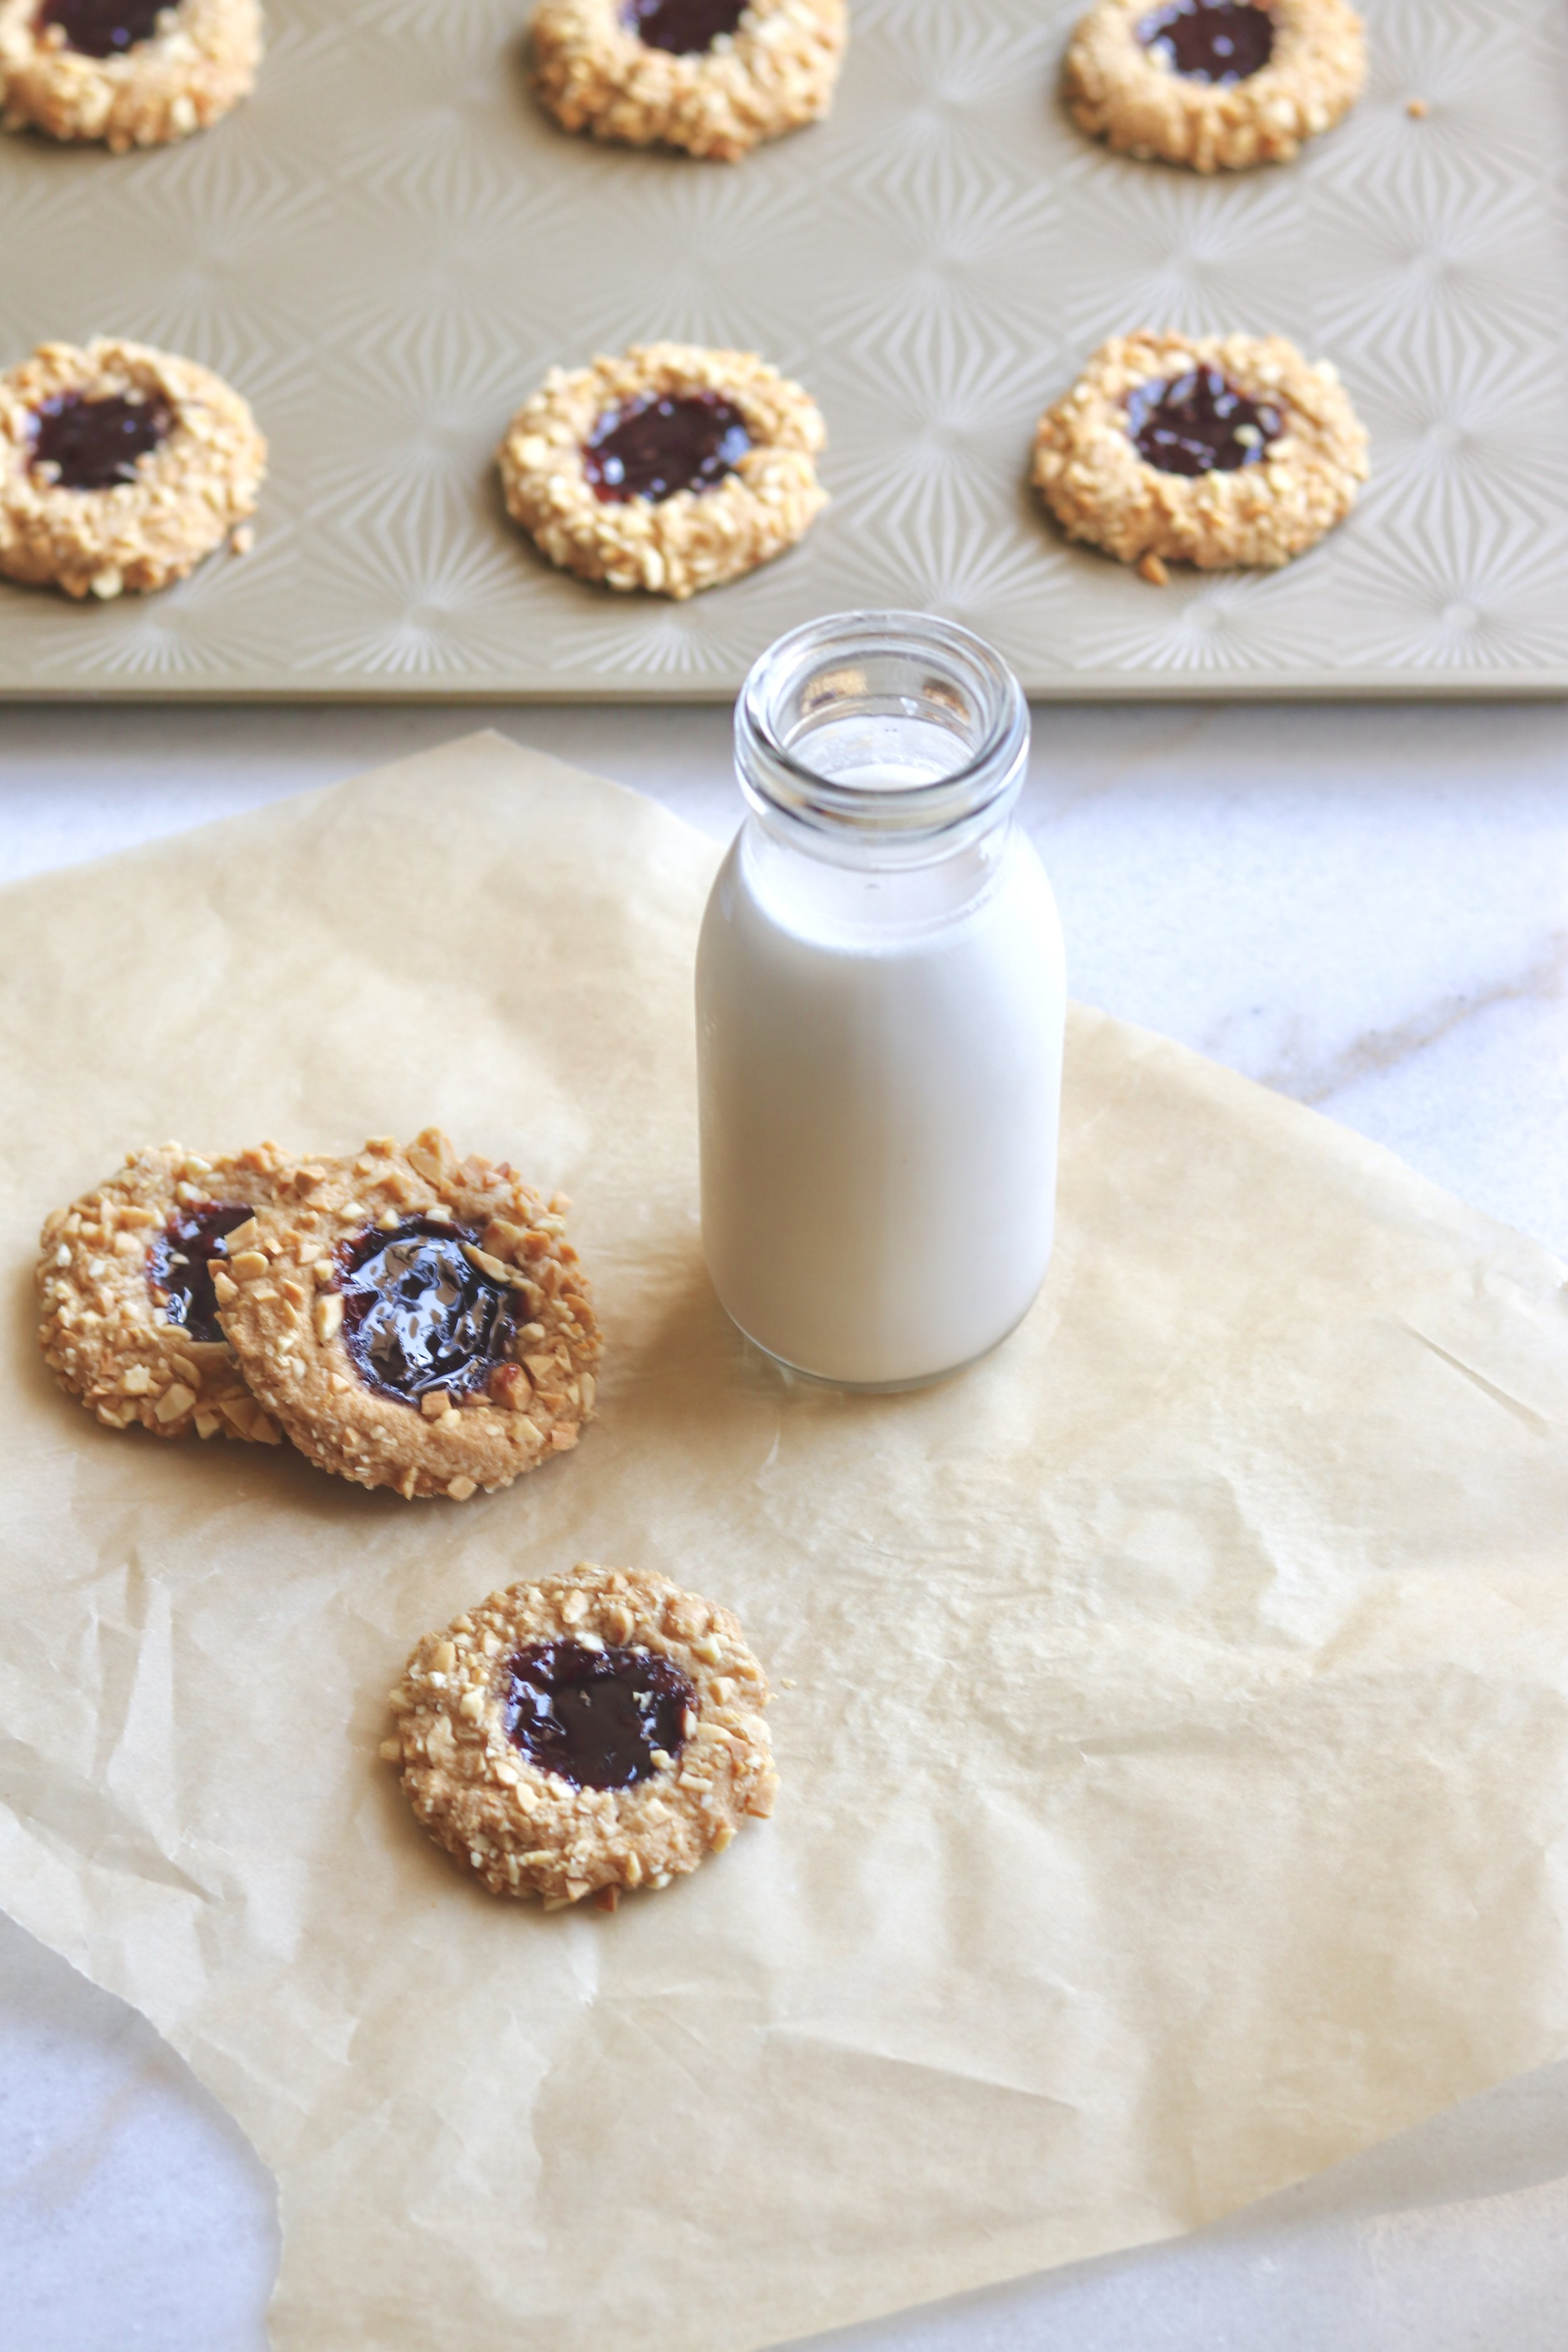 Grain-Free Peanut Butter and Jelly Thumbprints by I'd Eat That Food